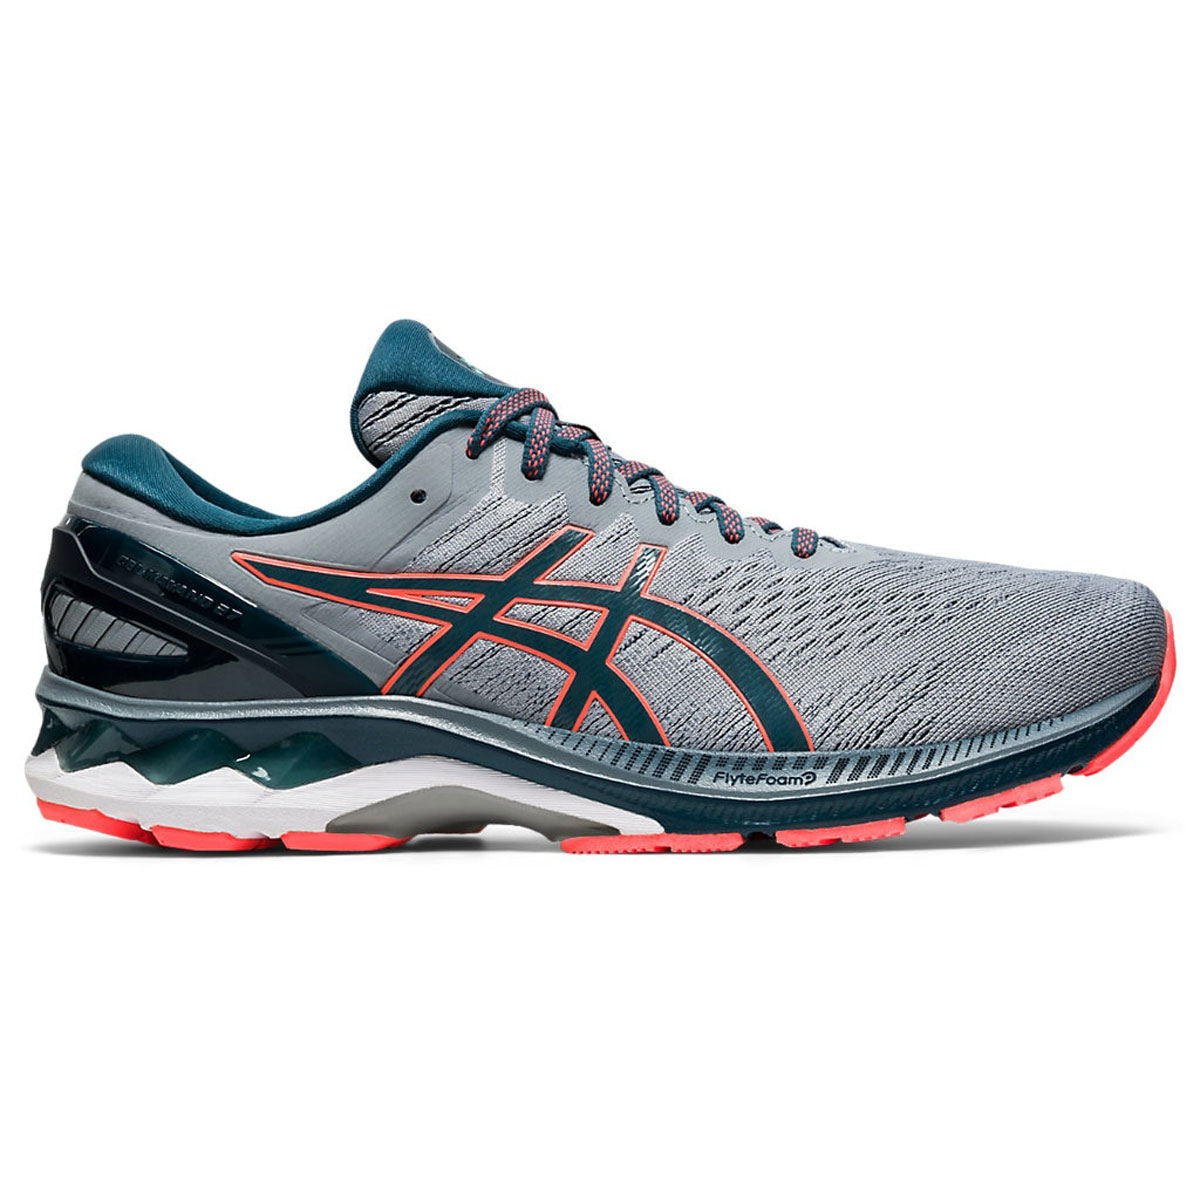 Men's Asics GEL-Kayano 27 Running Shoe - Color: Sheet Rock/Magn (Regular Width) - Size: 6, Sheet Rock/Magnetic Blue, large, image 1